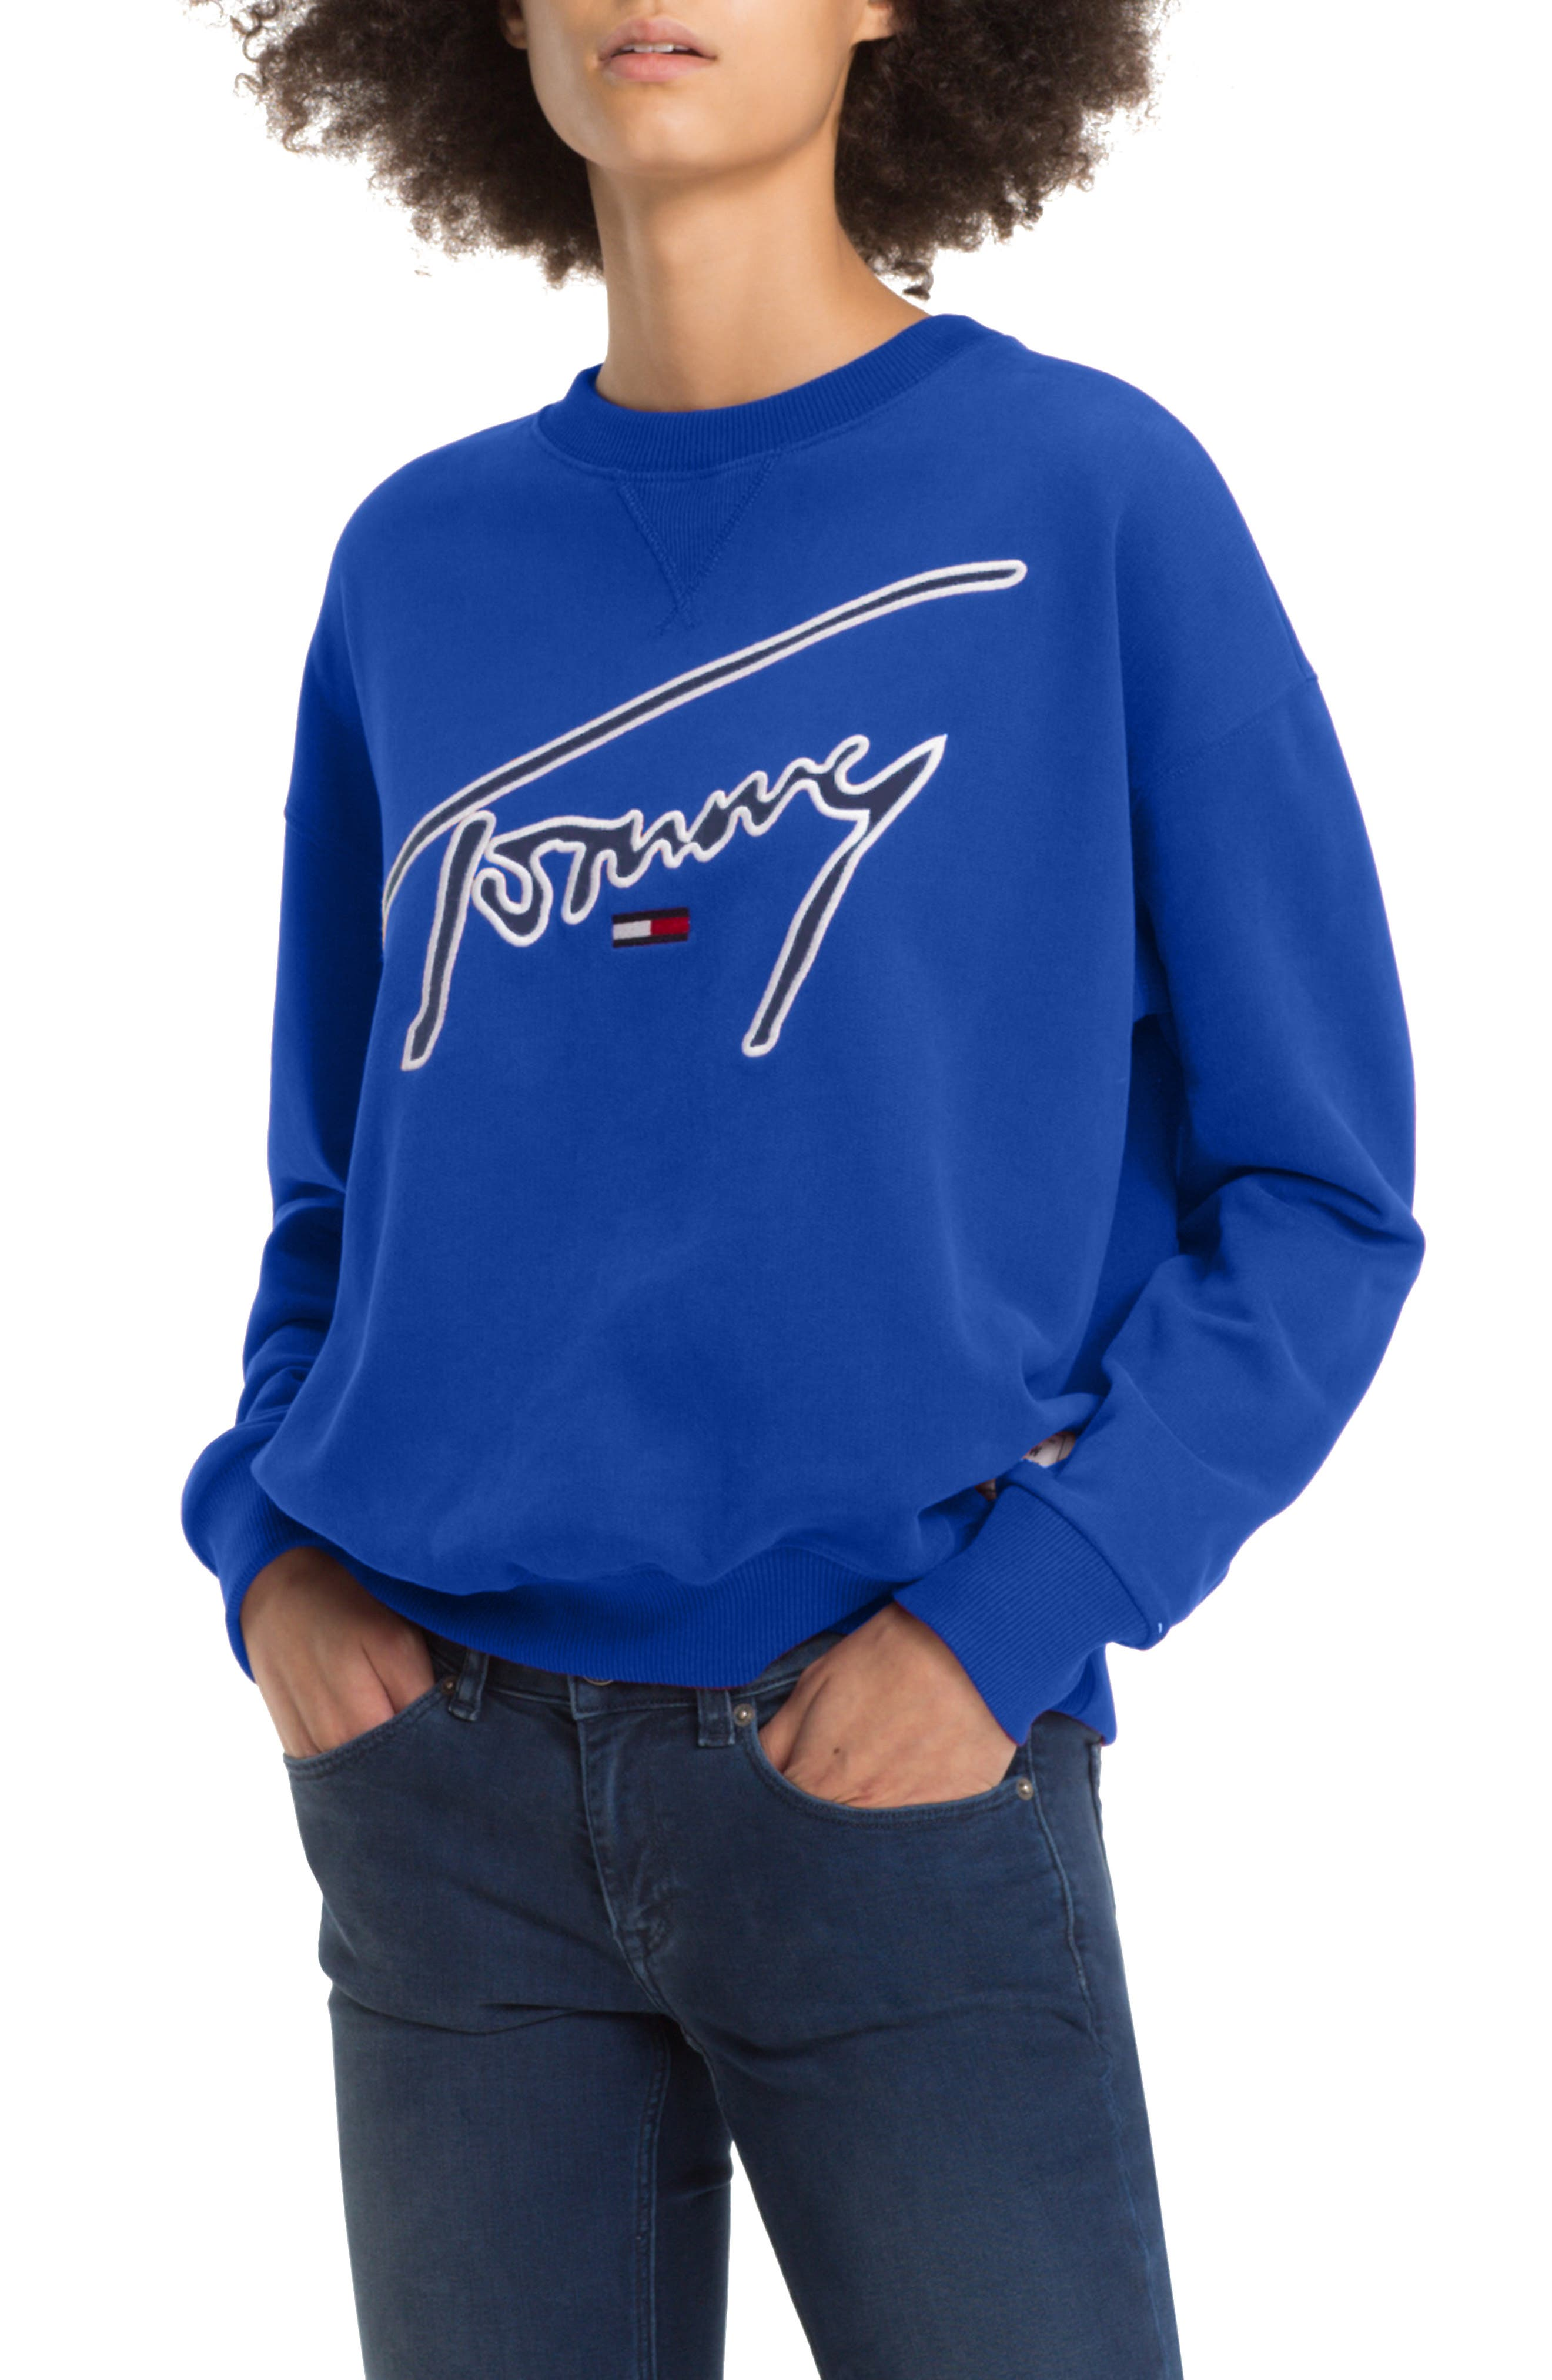 TOMMY JEANS,                             TJW Embroidered Logo Sweatshirt,                             Main thumbnail 1, color,                             419